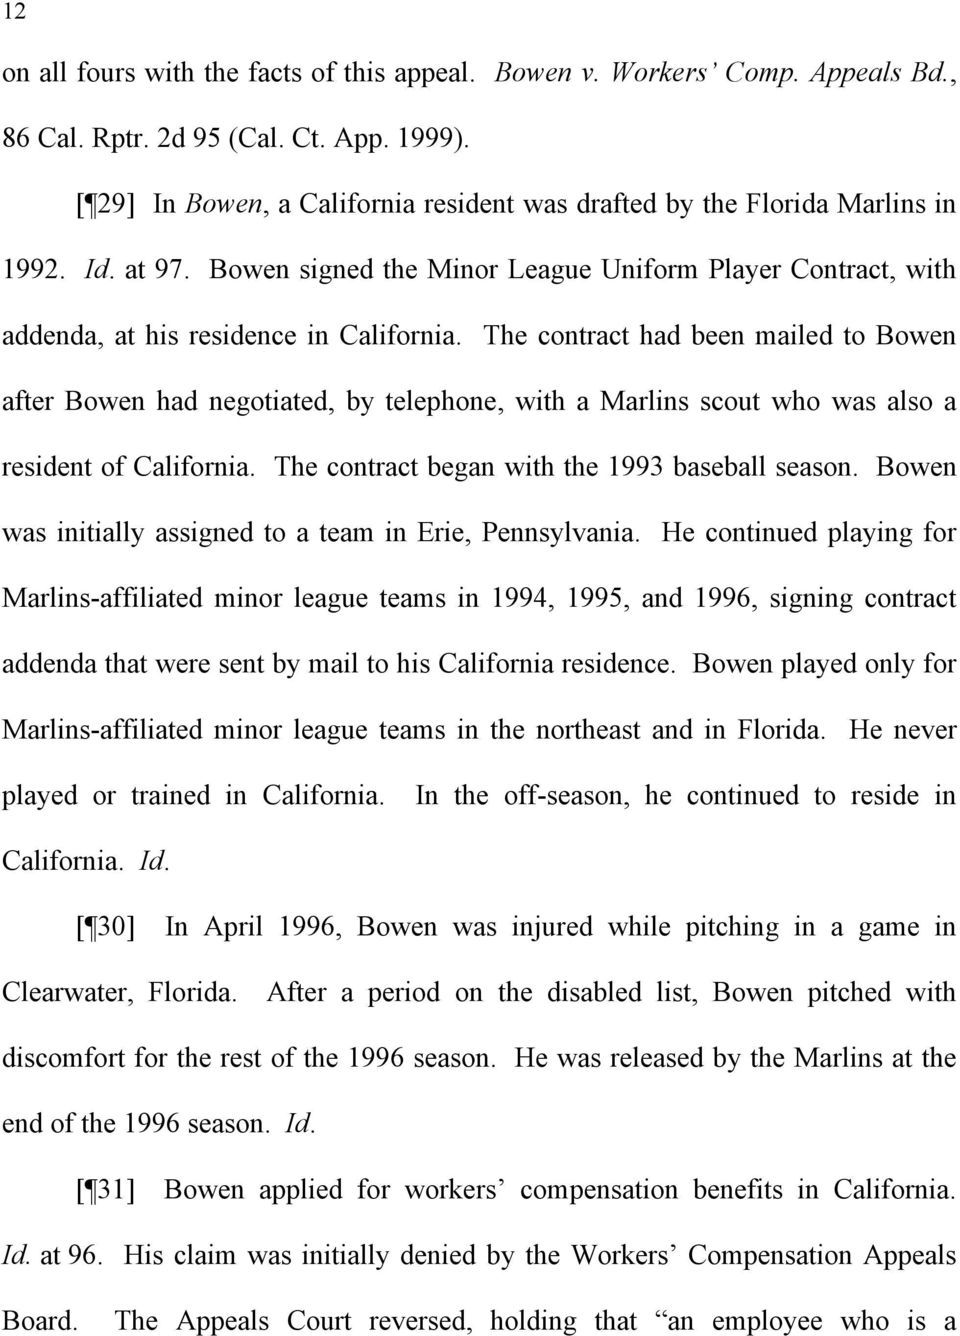 The contract had been mailed to Bowen after Bowen had negotiated, by telephone, with a Marlins scout who was also a resident of California. The contract began with the 1993 baseball season.